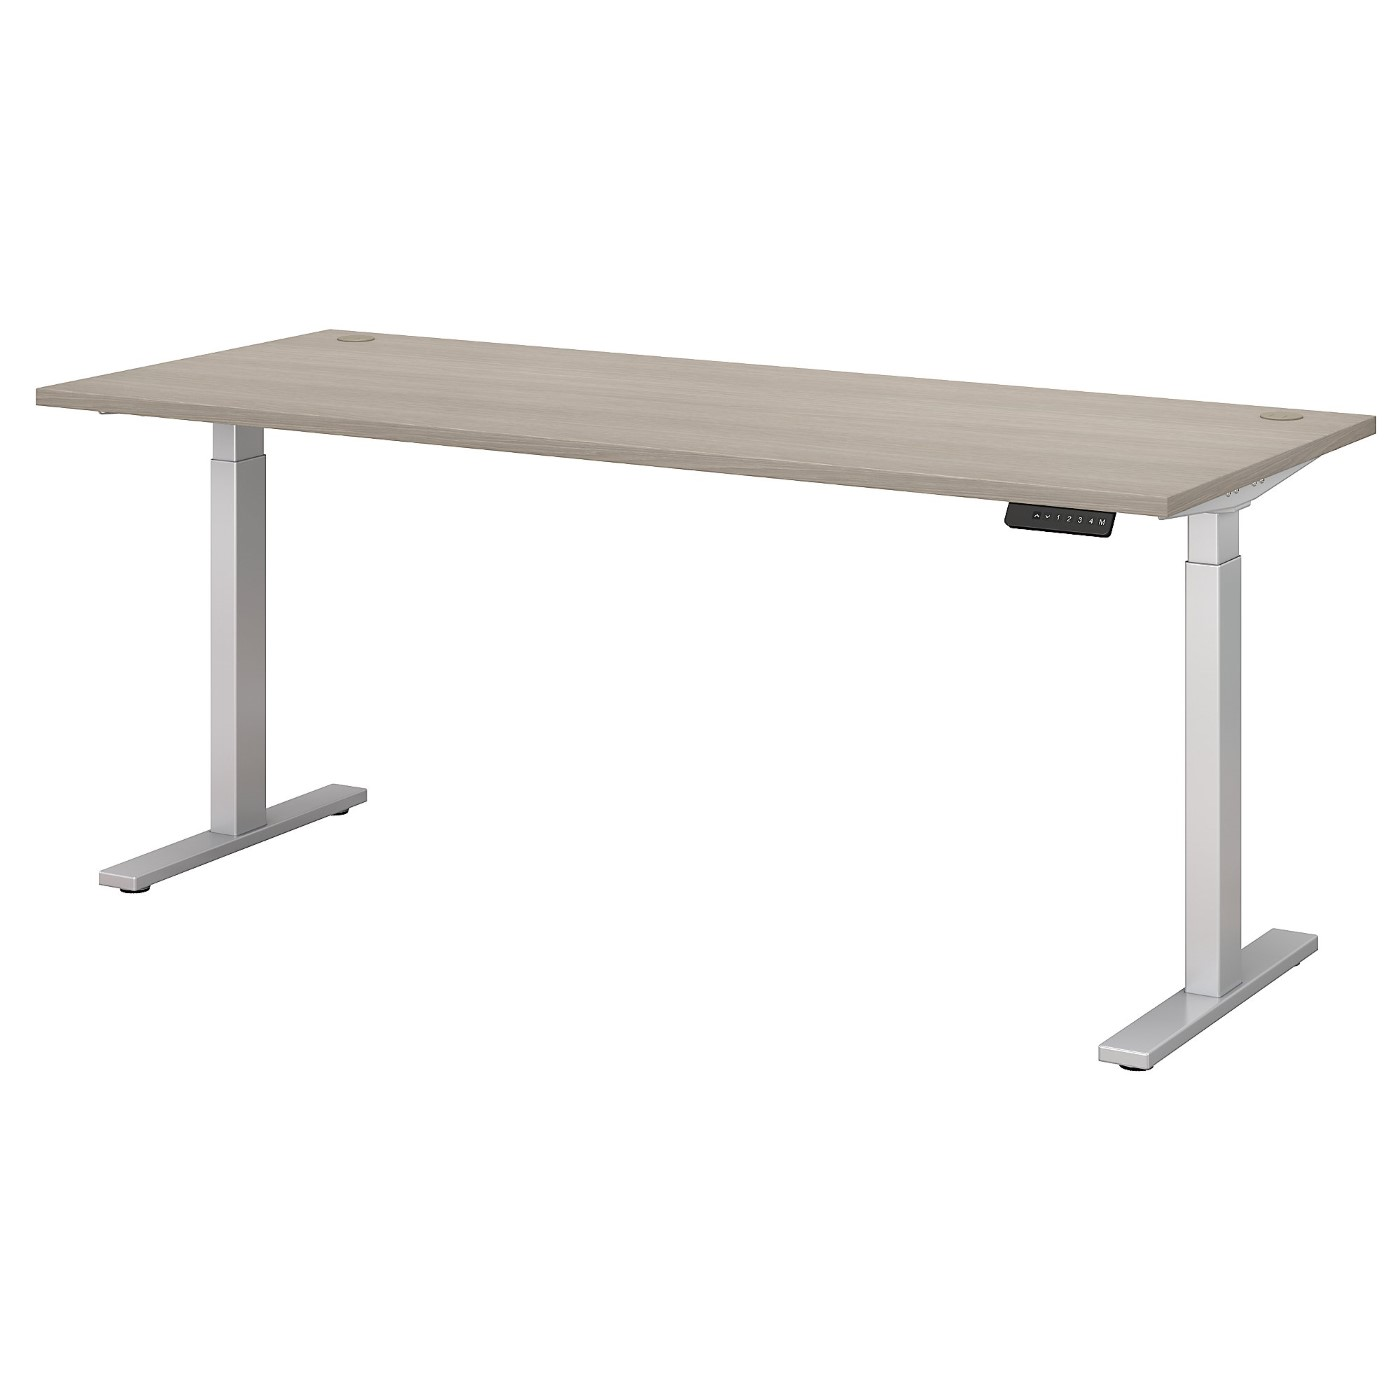 MOVE 60 SERIES BY BUSH BUSINESS FURNITURE 72W X 30D HEIGHT ADJUSTABLE STANDING DESK. FREE SHIPPING